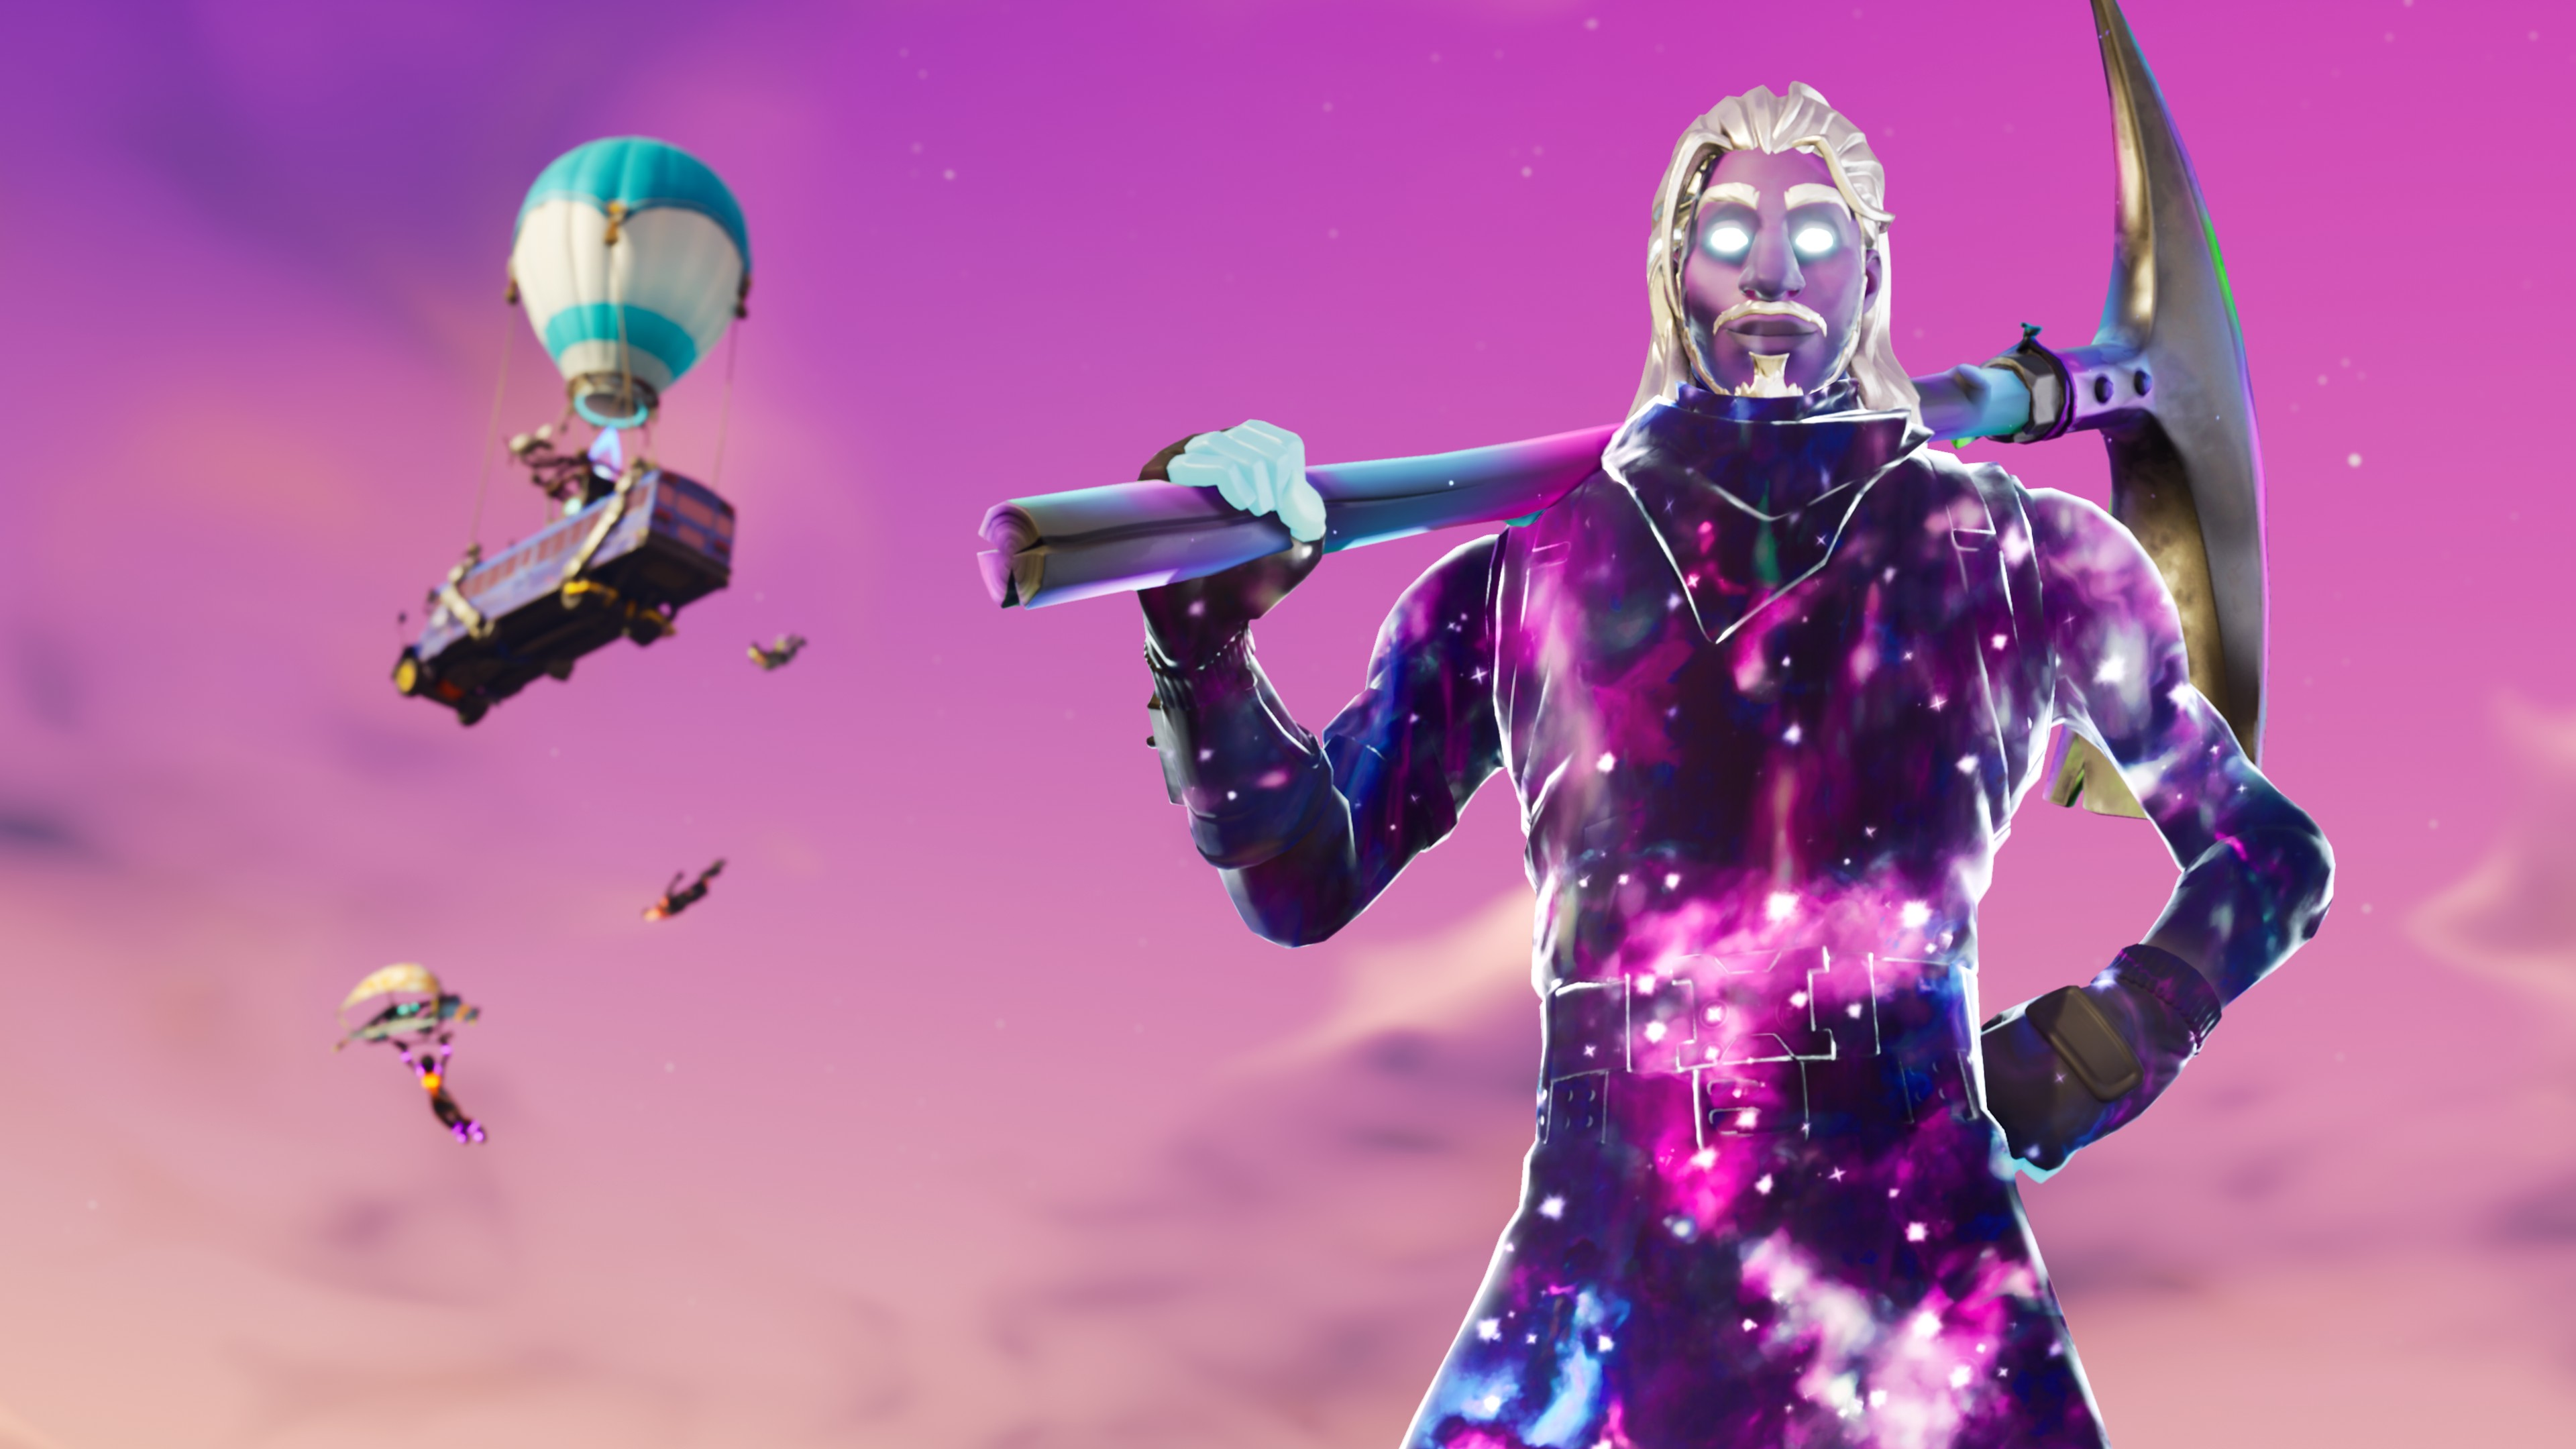 Samsung Fortnite contest for the Galaxy Note 9 offers great prizes